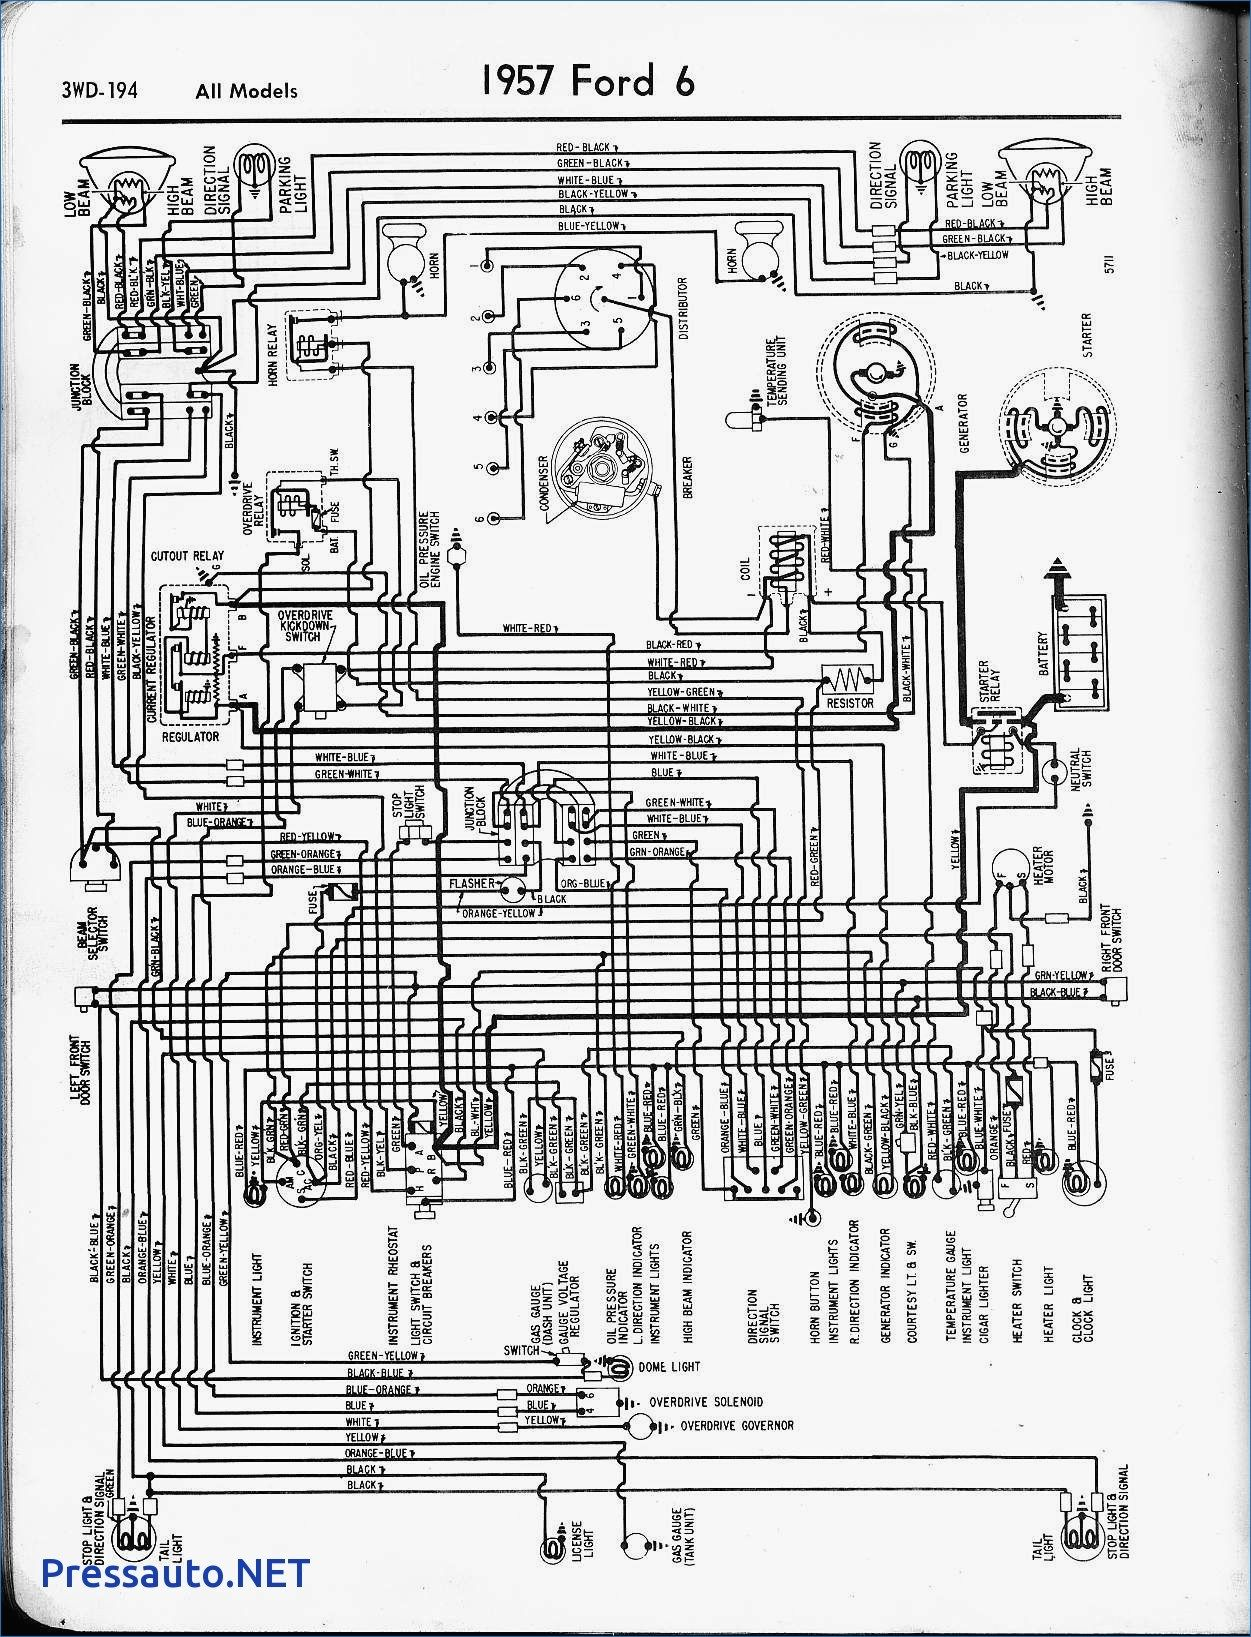 1954 Ford Crestline Wiring Diagram Reinvent Your 1960 Peugeot 307 Power Steering Pressauto Net In On Rh Pinterest Com Brake Light Switch 1953